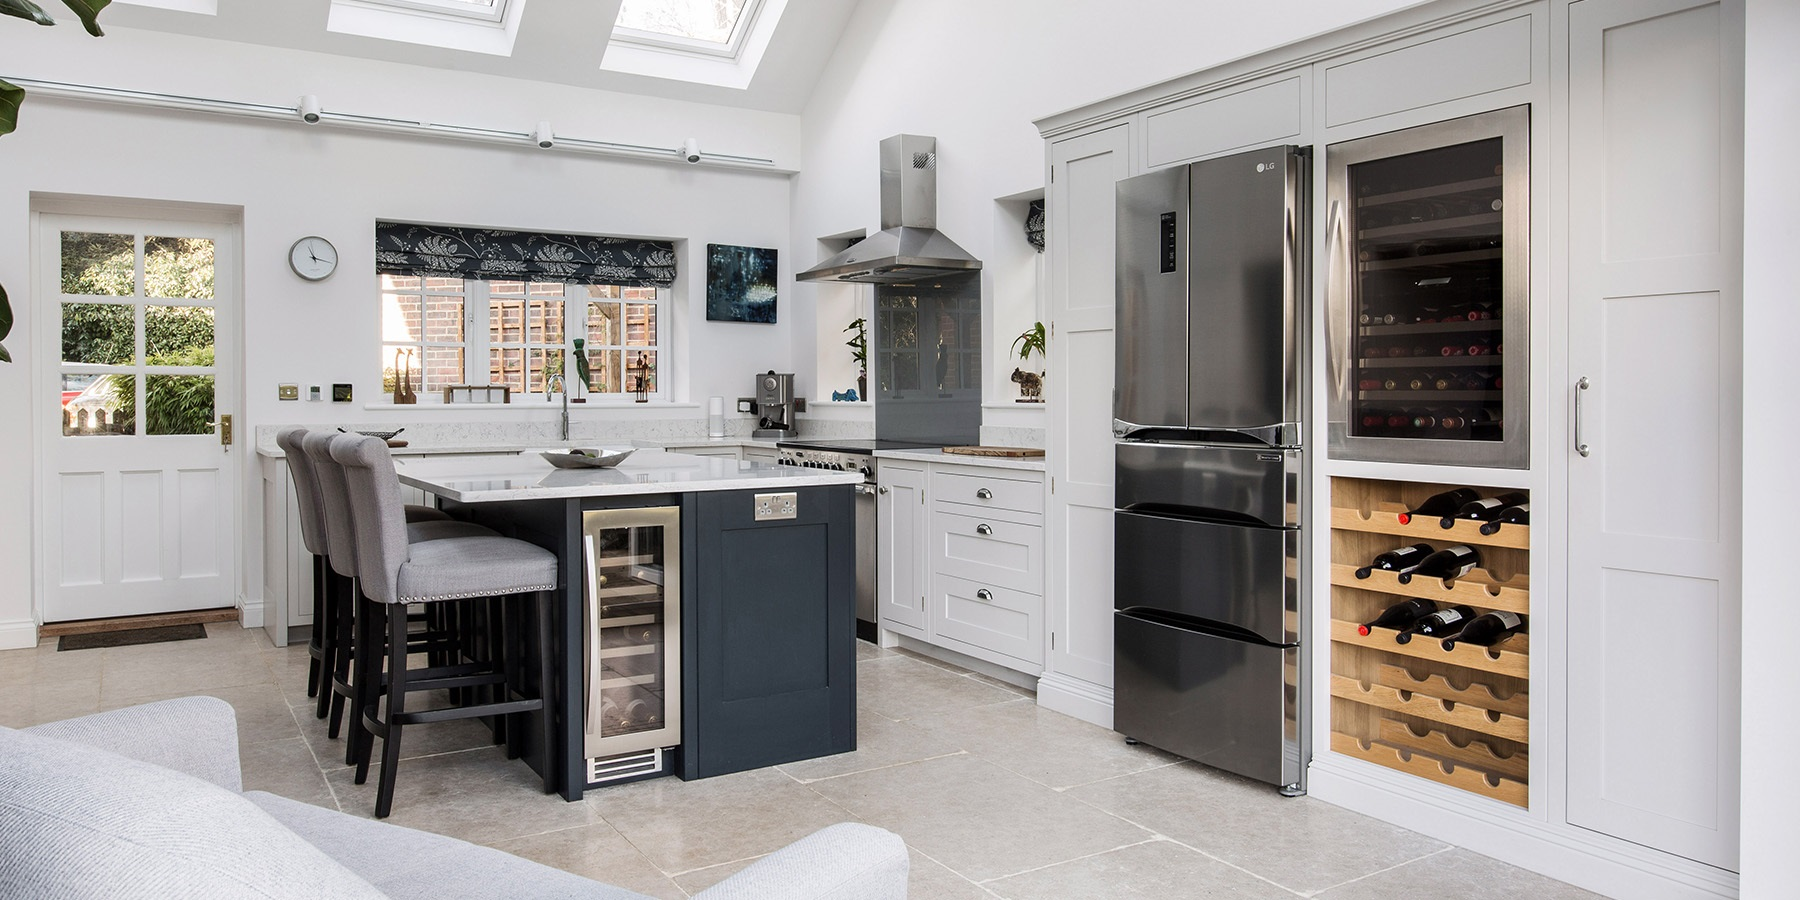 Handmade Shaker Kitchen Extension - Burlanes bespoke Hoyden kitchen cabinetry in white and blue, with central kitchen island with wine cooler and breakfast bar.